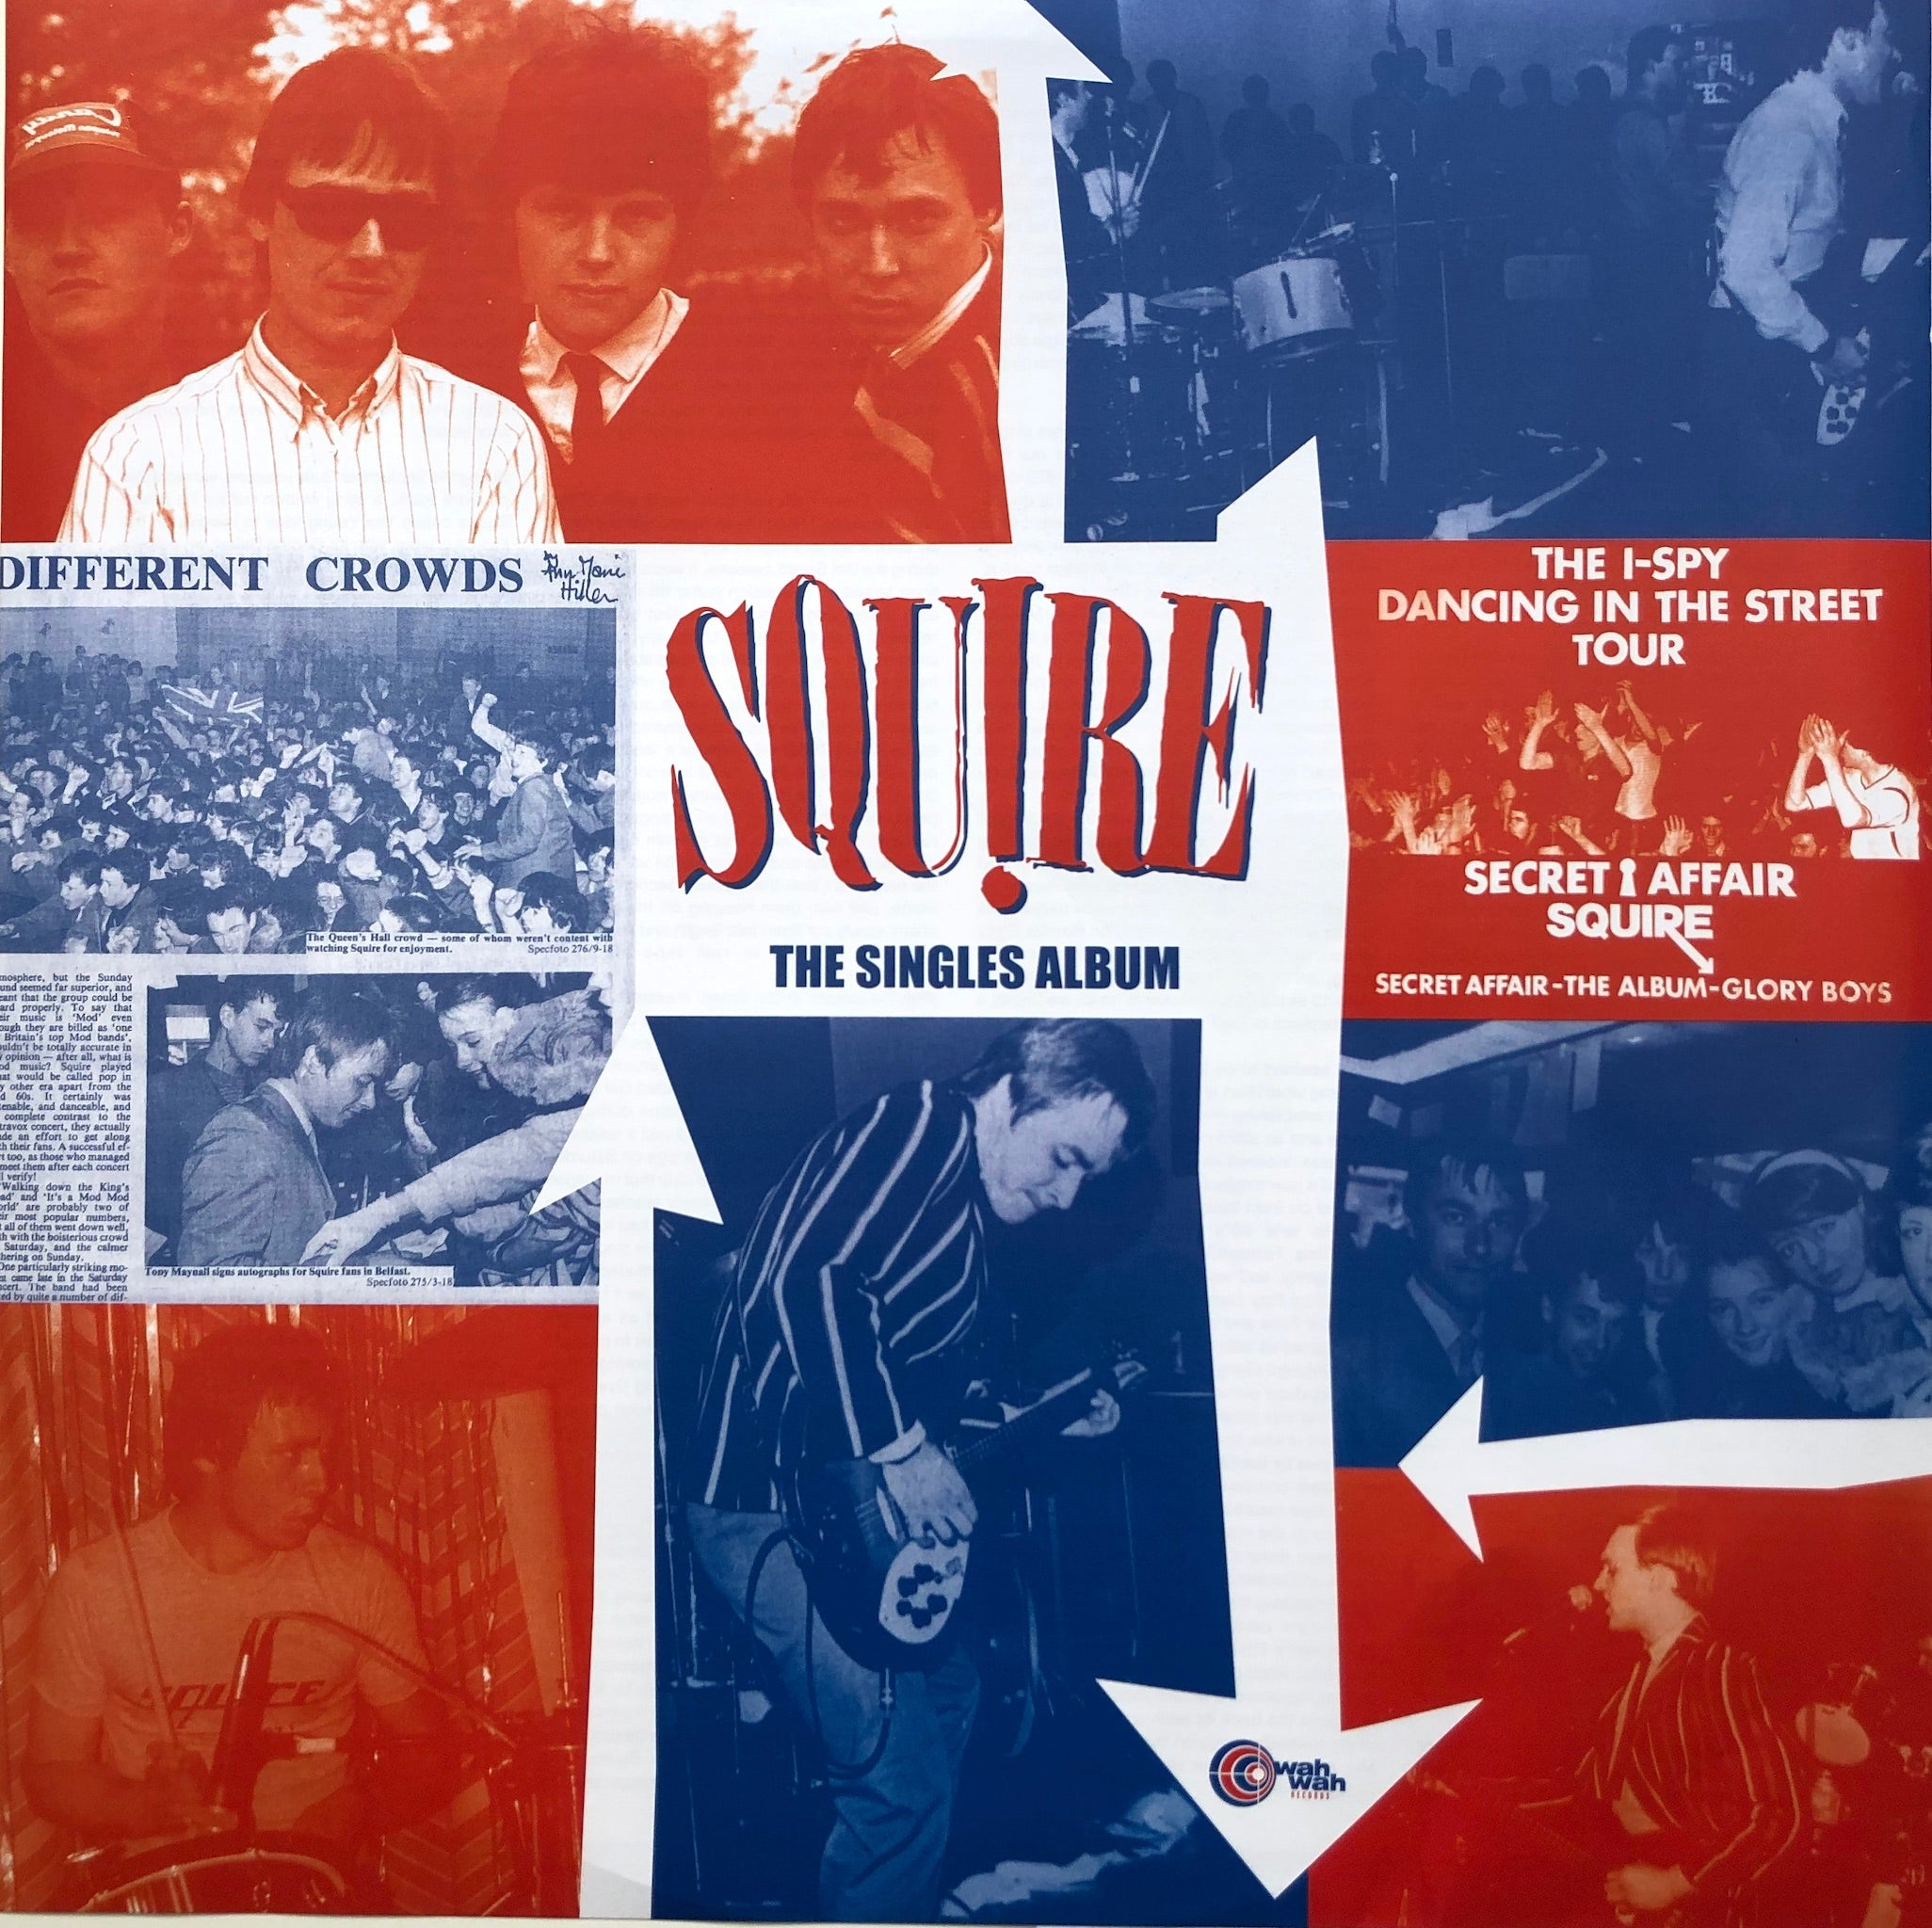 Squire - The Singles Album - Vinyl LP with special insert